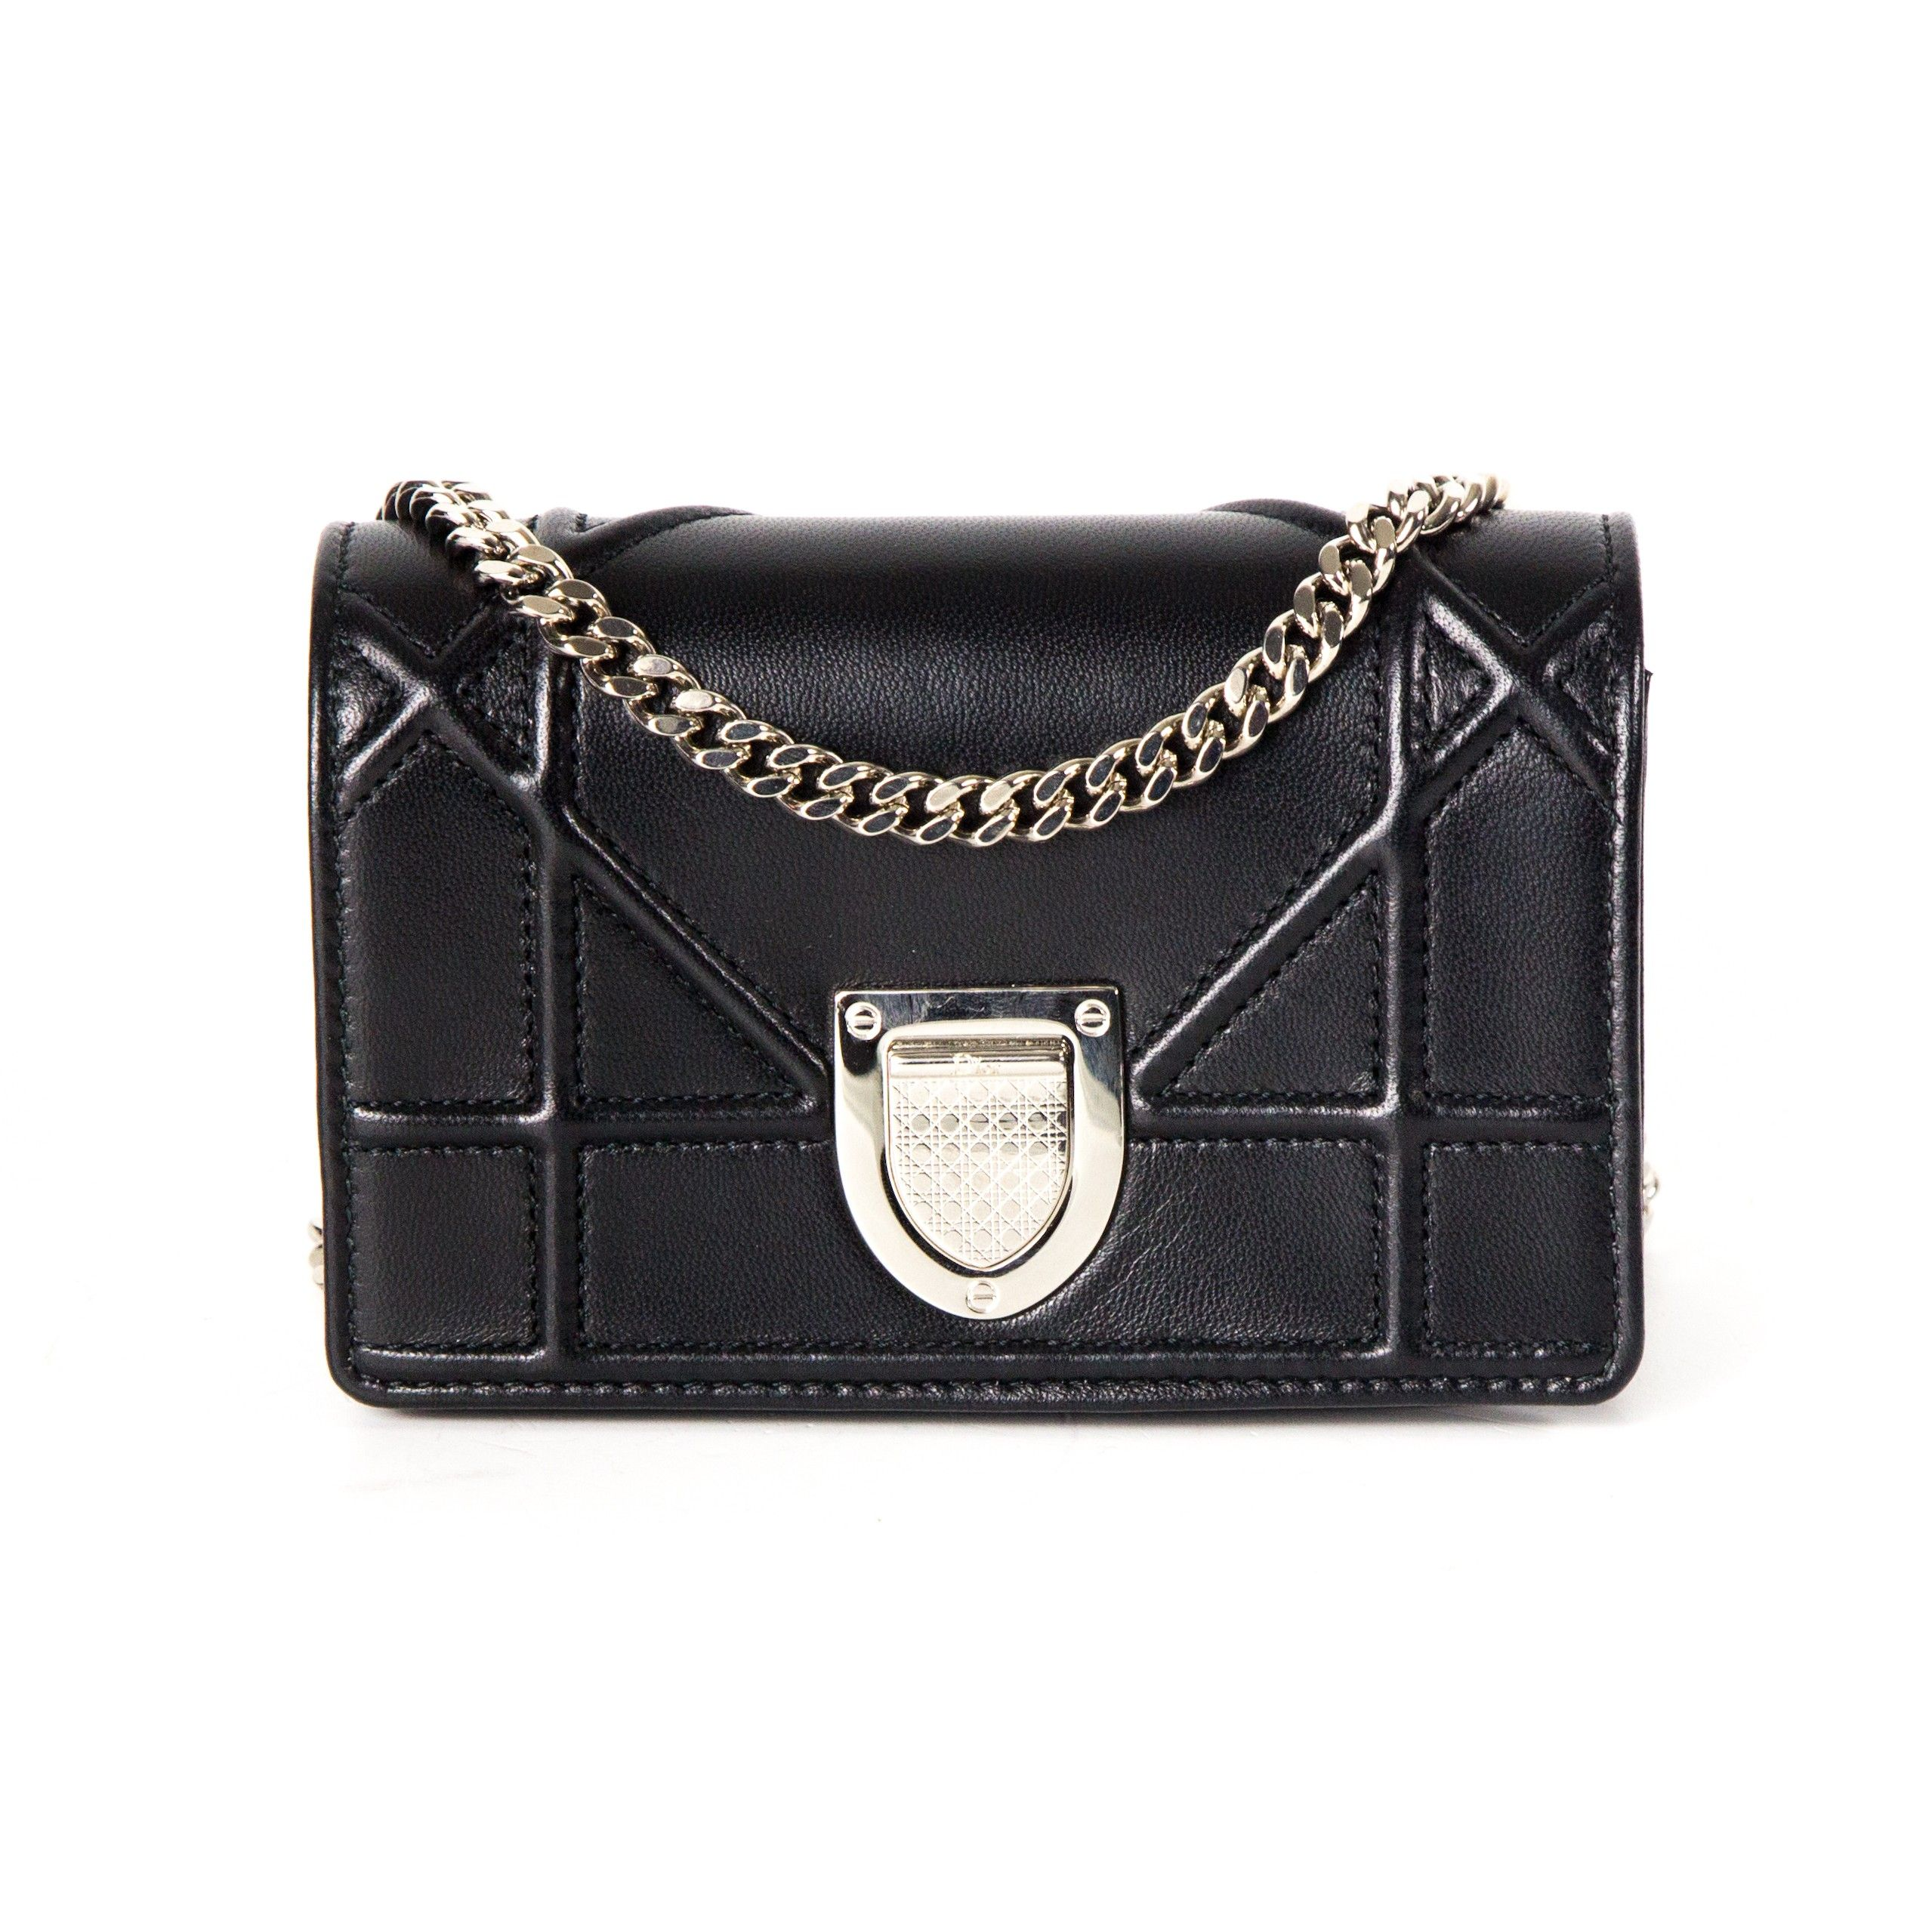 Christian Dior Diorama Black Mini Crossbody Bag - Dior - Diorama Mini  Crossbody Bag can also